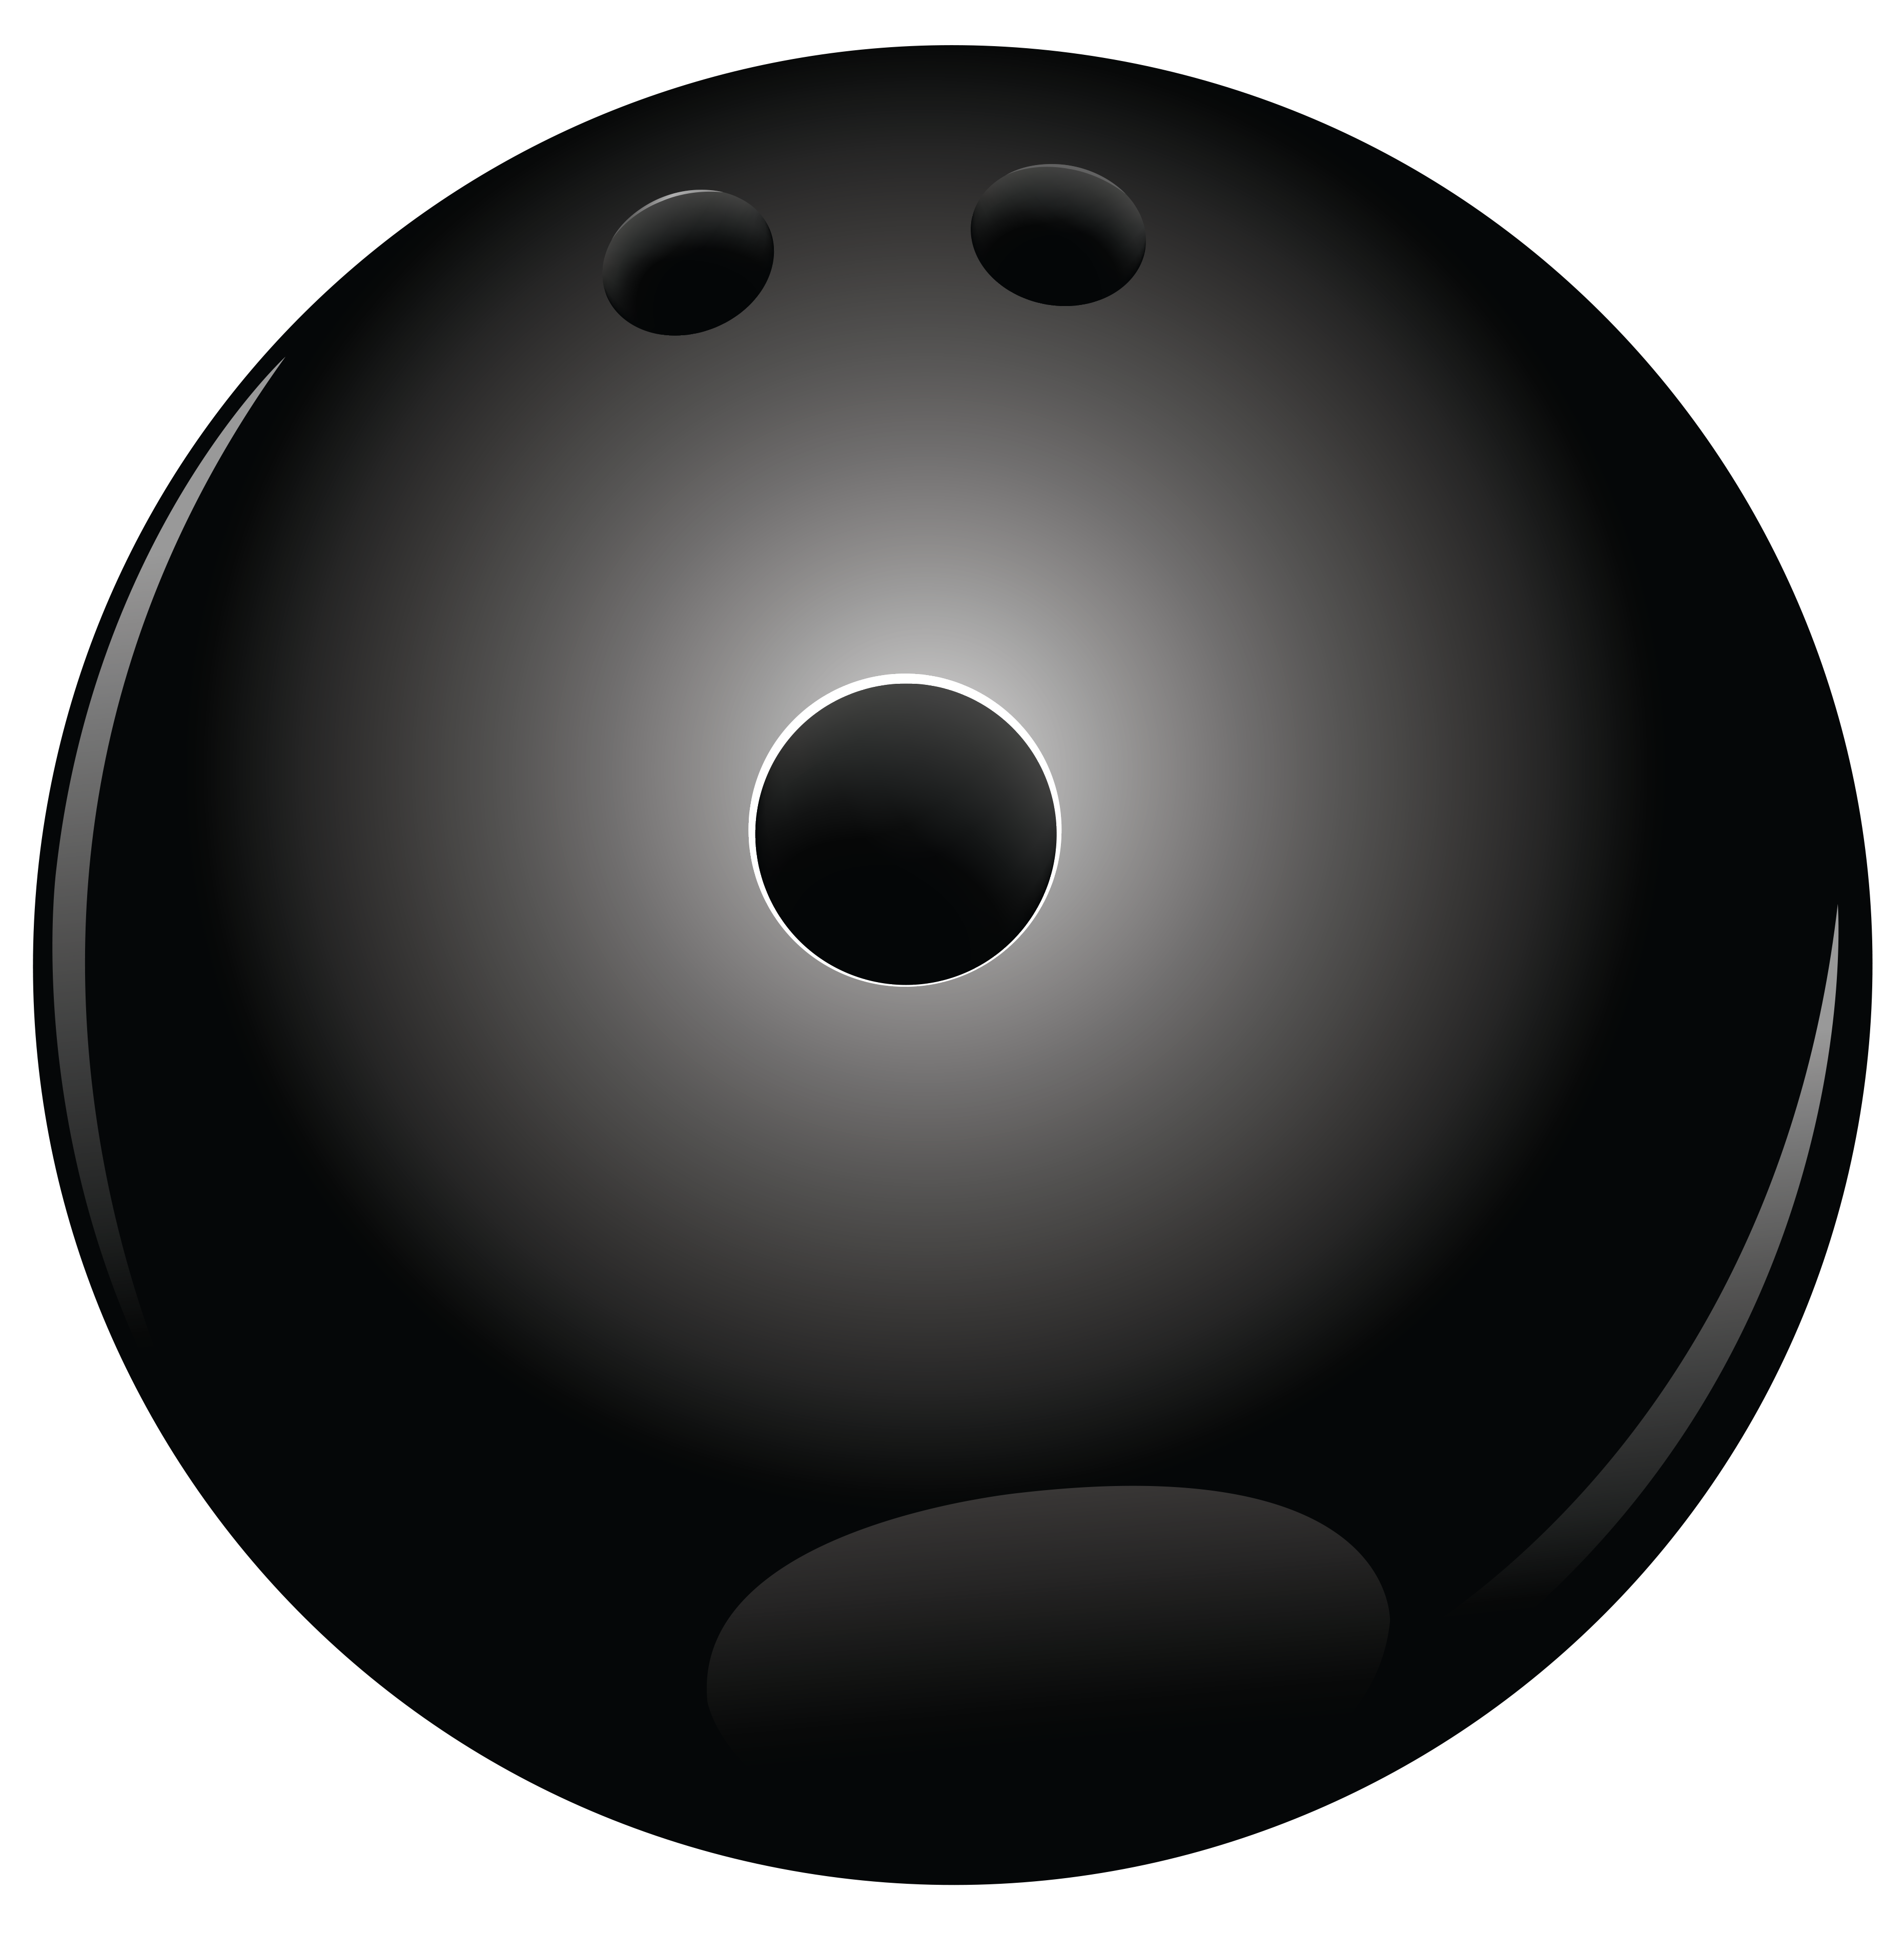 3715x3771 Collection Of Free Bowling Ball Clipart High Quality, Free